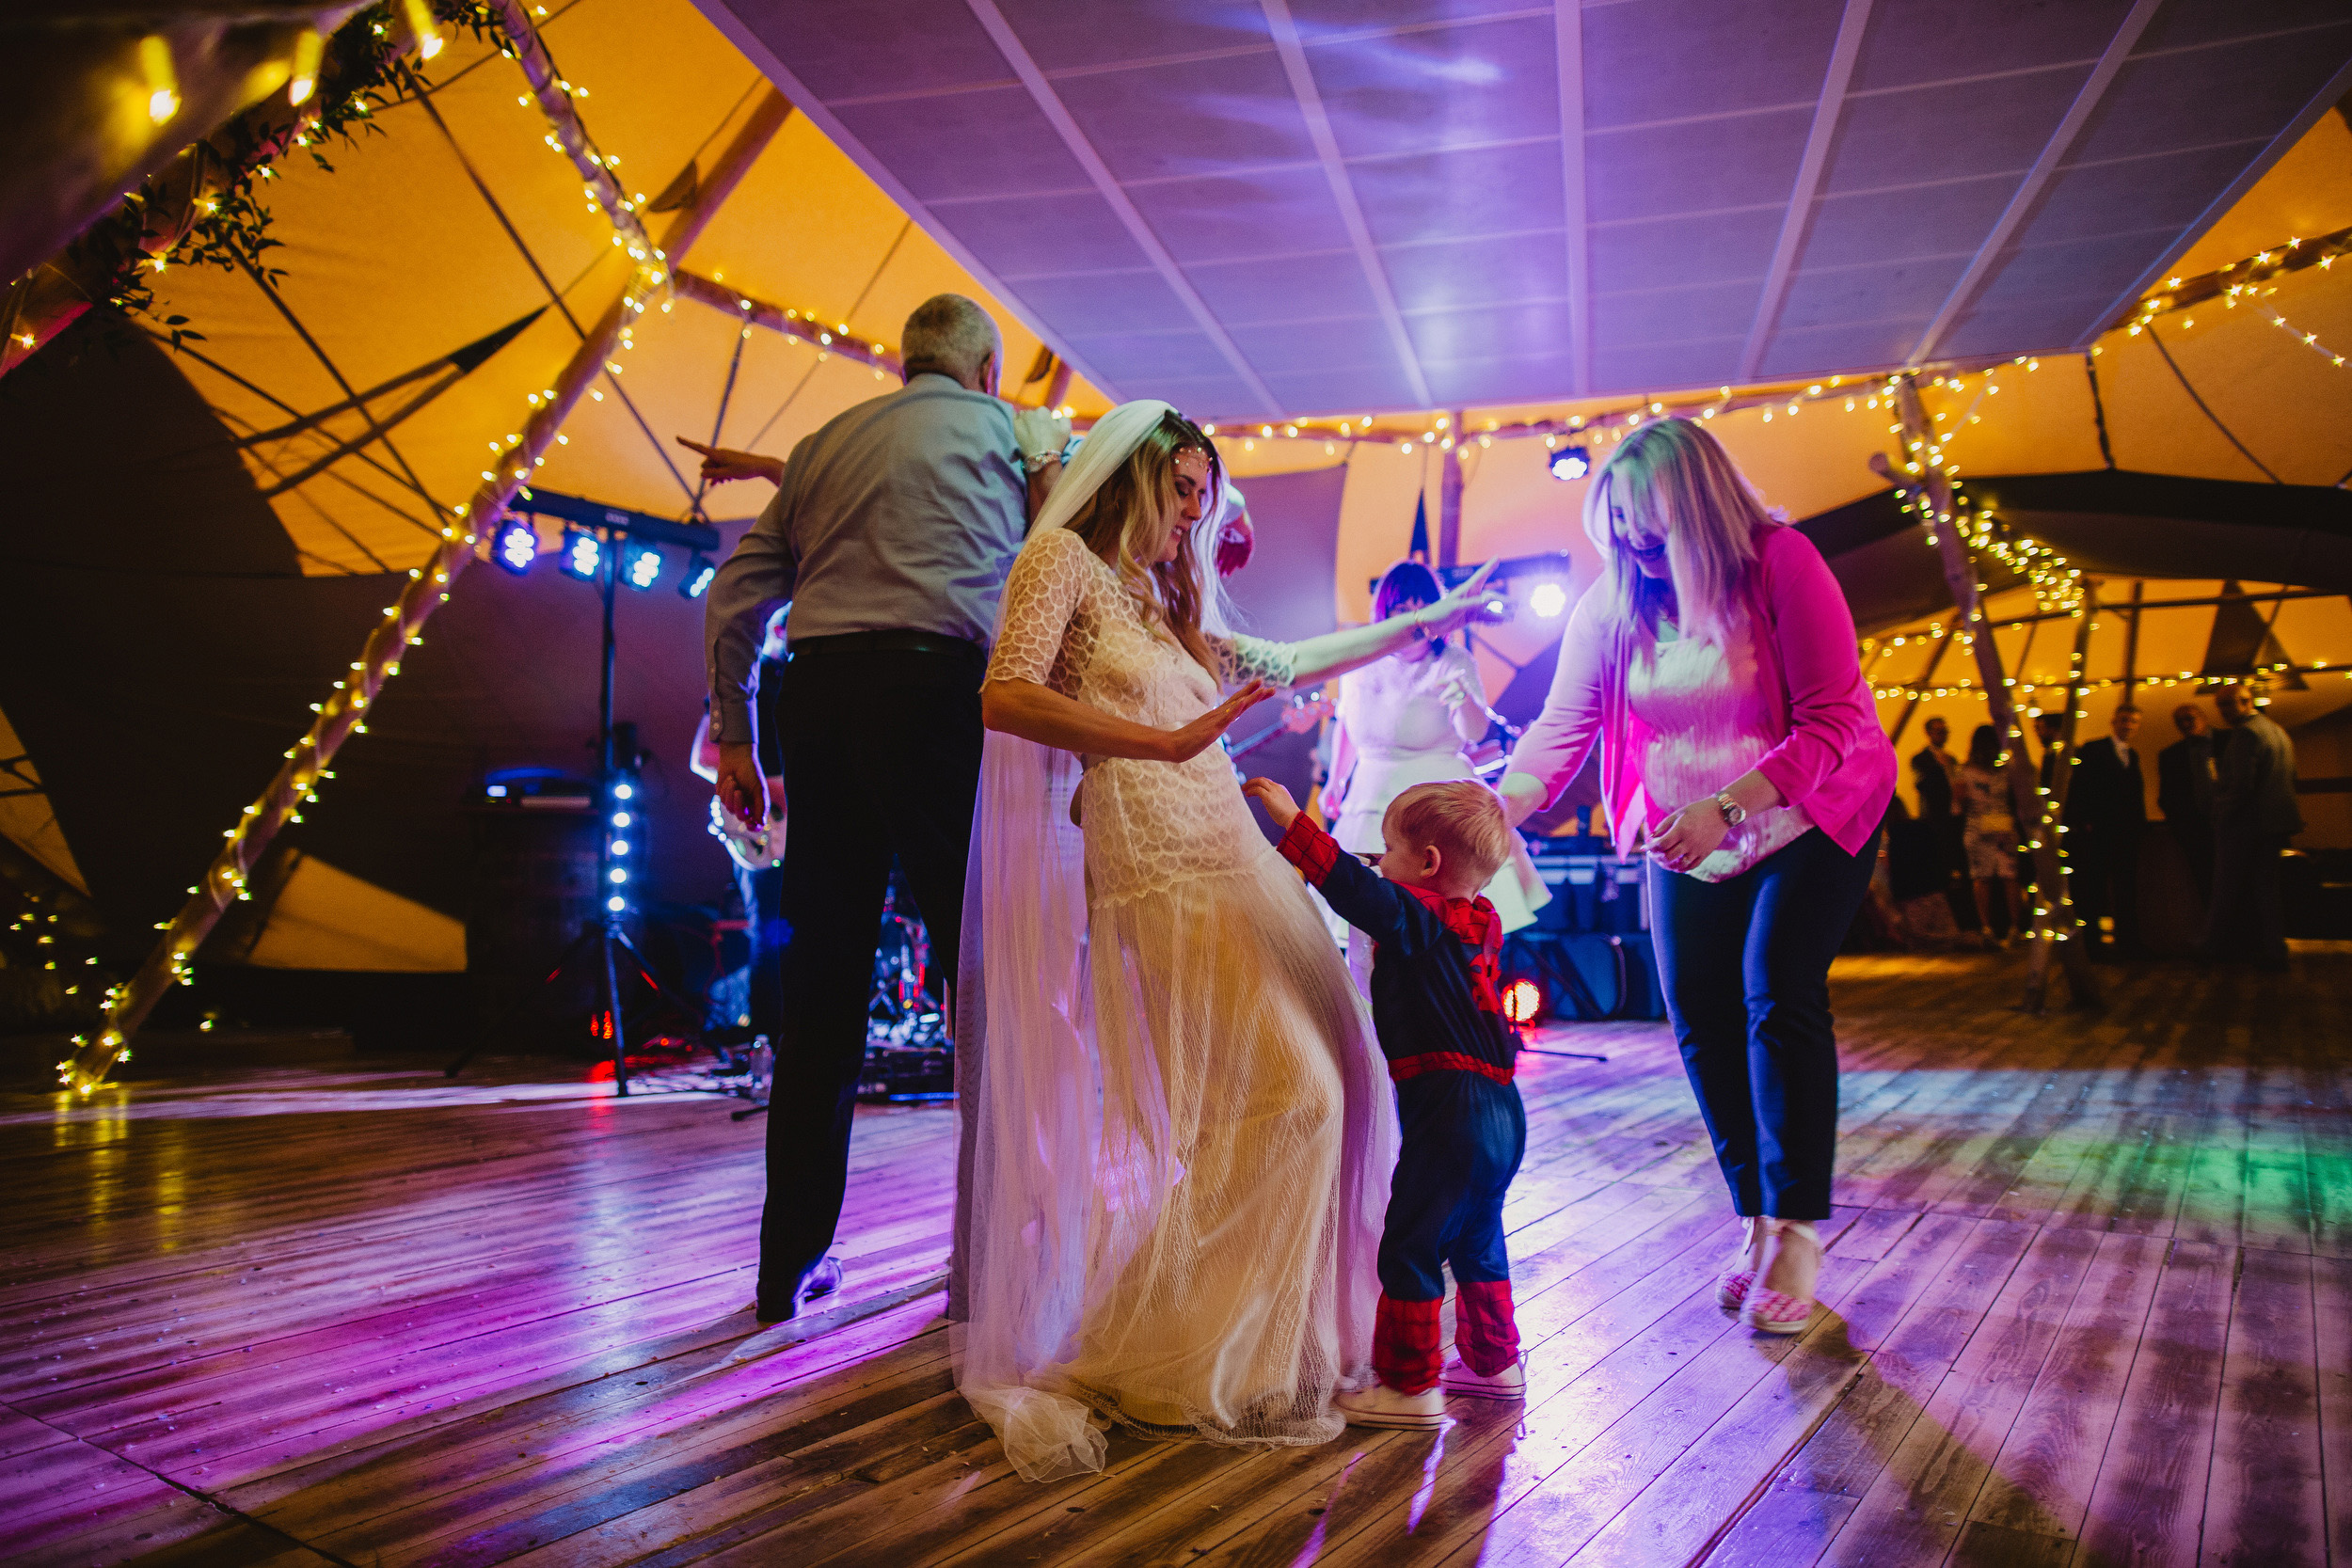 Gemma-Bohemian-Outdoor-Tipi-Wedding-Laid-Back-Relaxed-Family-Wedding-Kate-Beaumont-Astilbe-by-S6-Photography-Sheffield-61.jpg